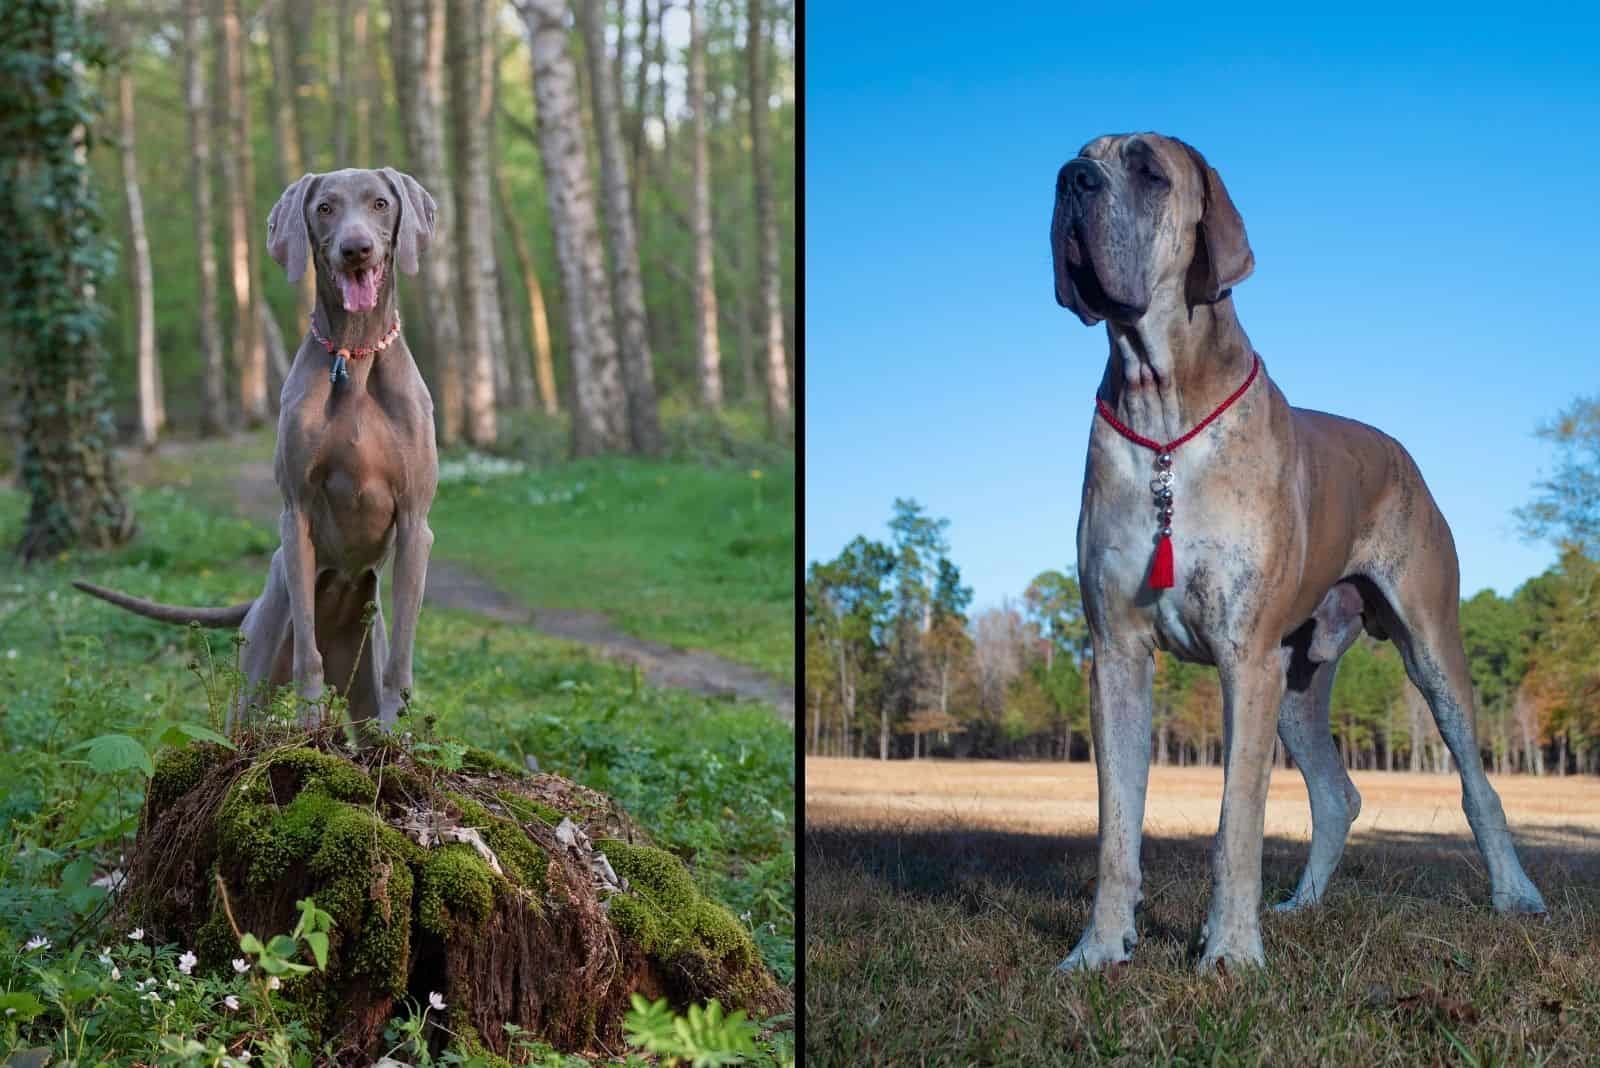 weimaraner and great dane dog in two frames